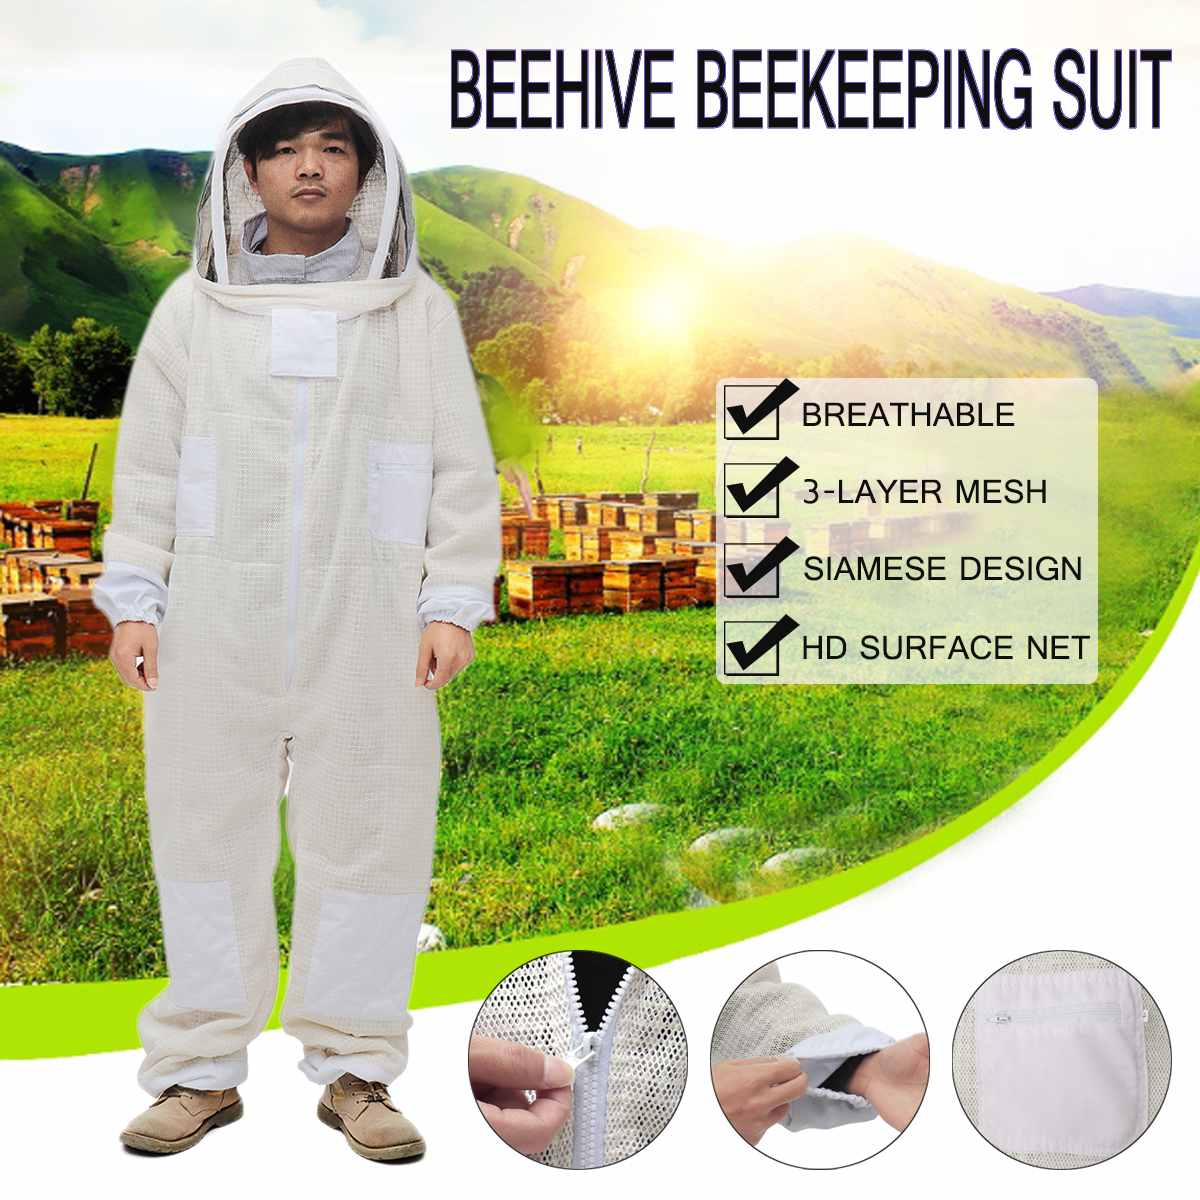 Beekeepers Full Body Beekeeping Clothing Professional Bee Protection Beekeeping Suit Safty Veil Hat Dress All Body EquipmentBeekeepers Full Body Beekeeping Clothing Professional Bee Protection Beekeeping Suit Safty Veil Hat Dress All Body Equipment